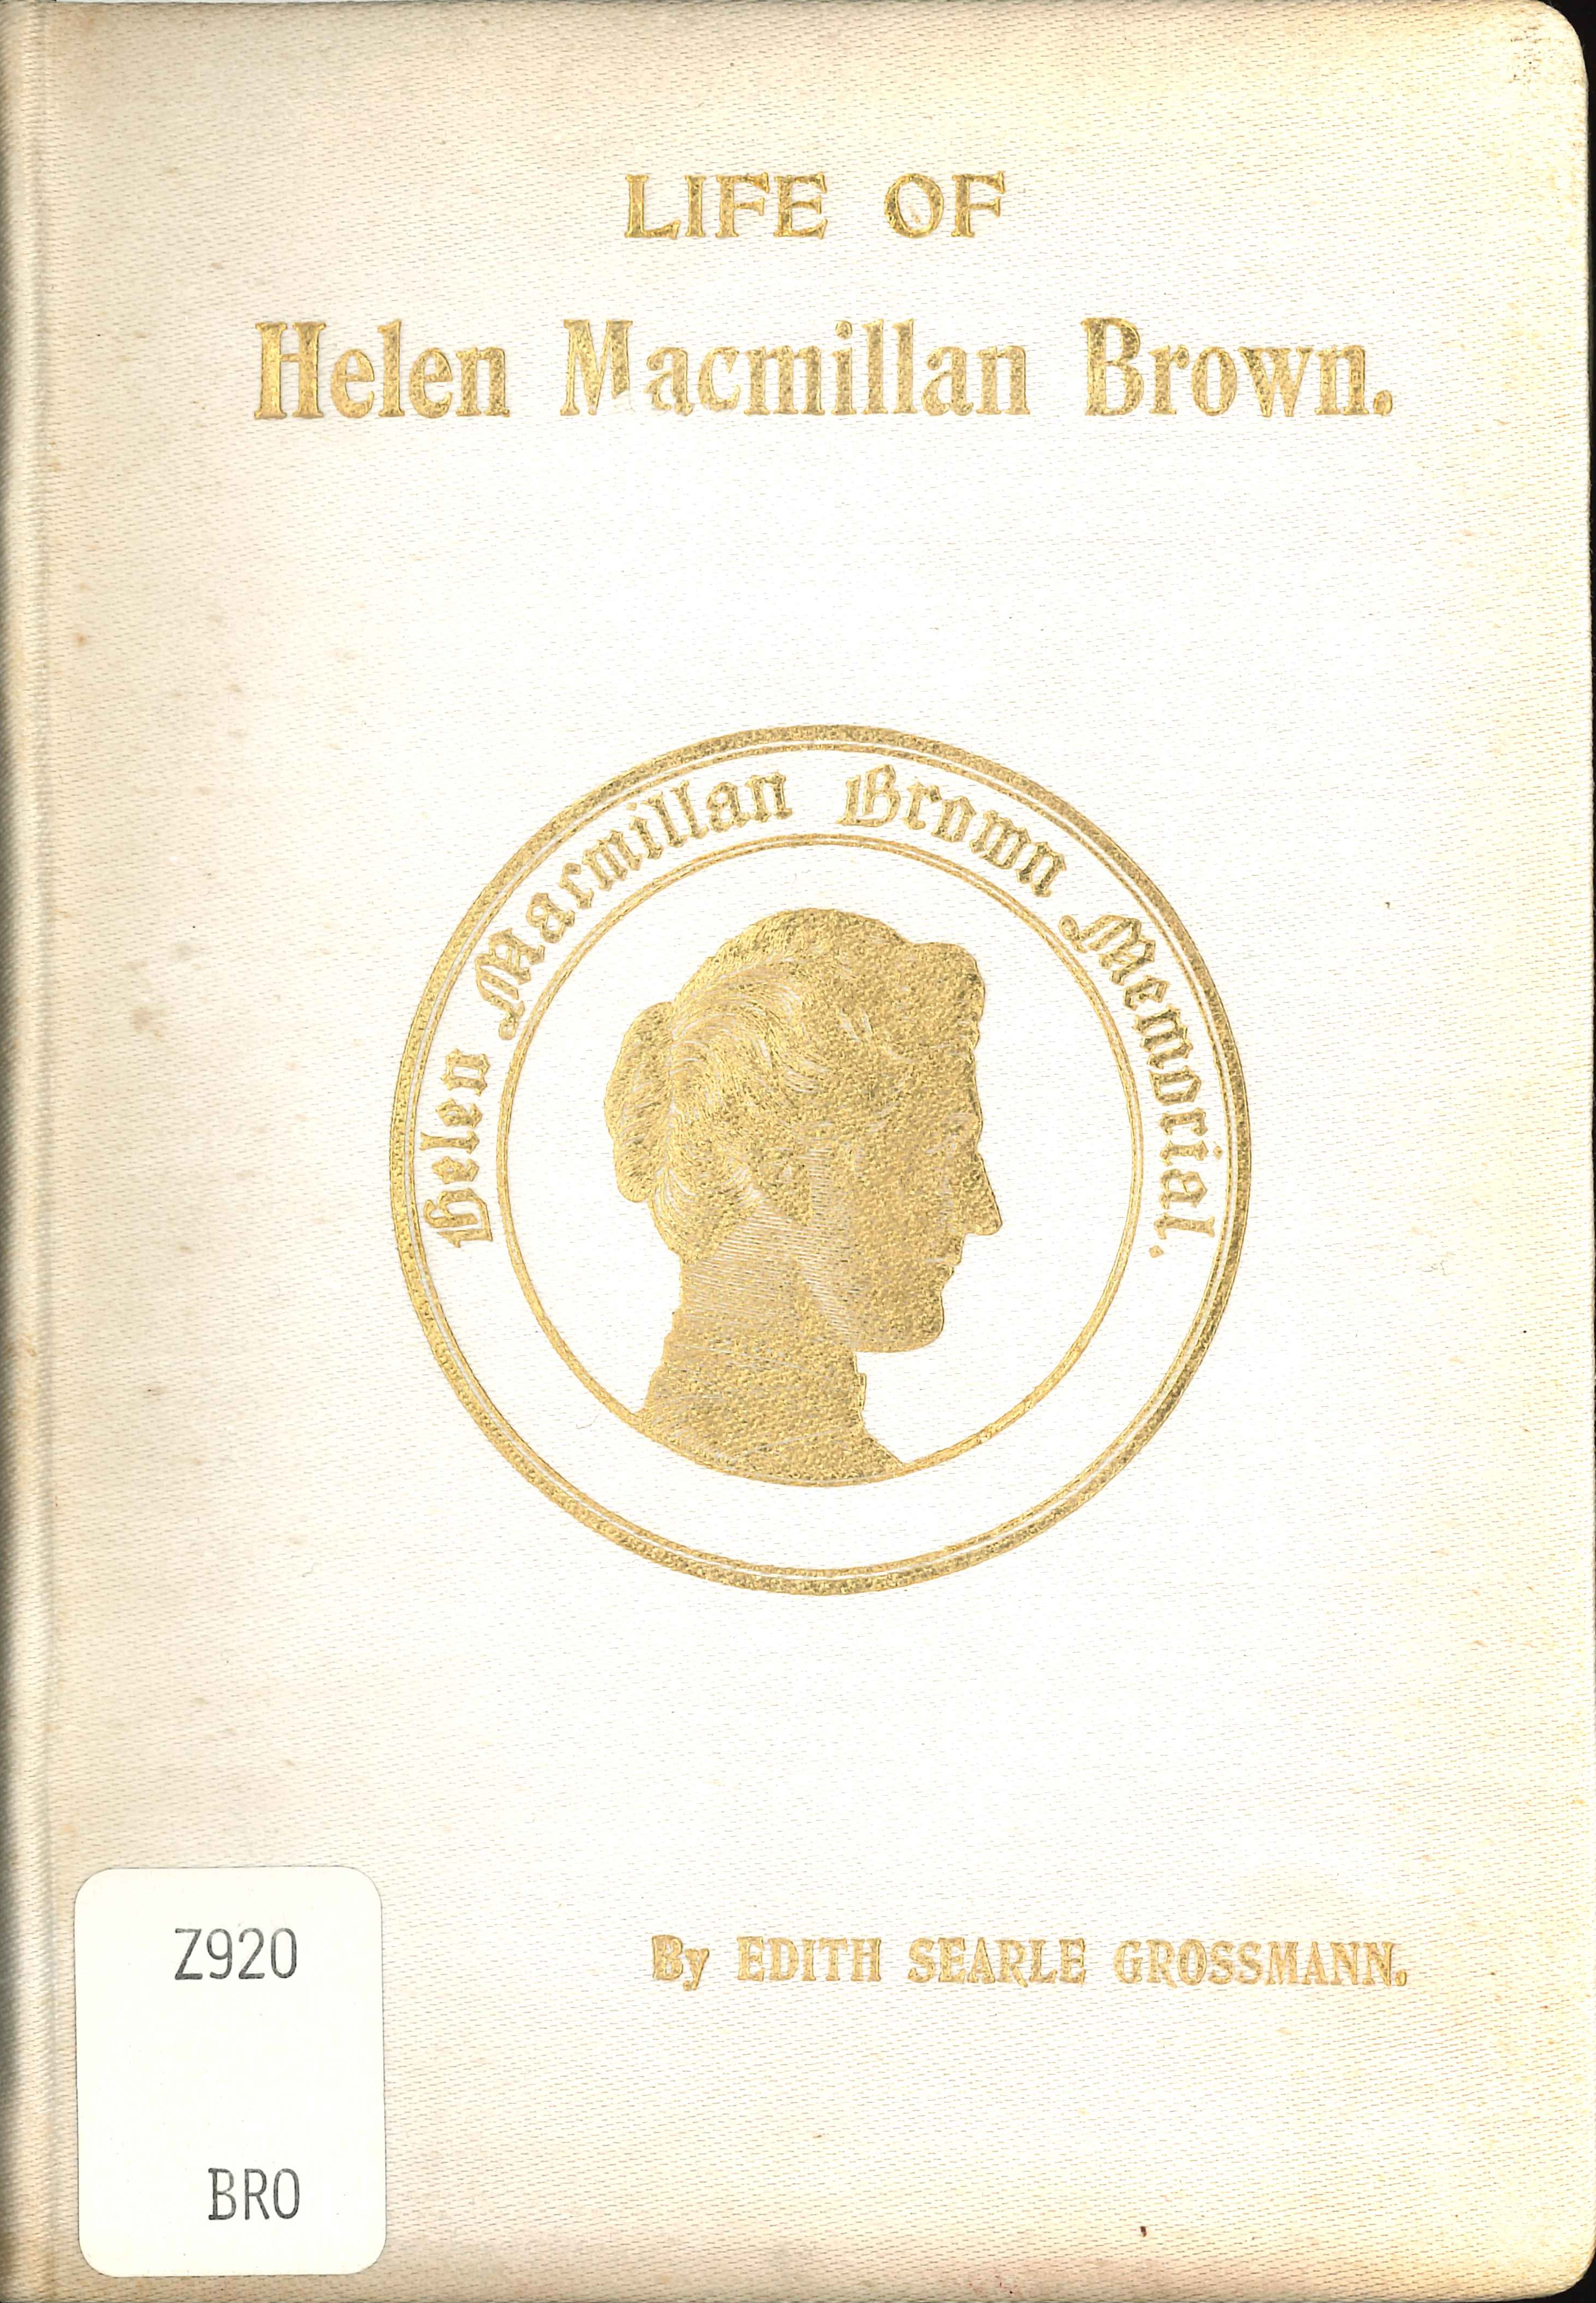 Edith Searle Grossmann. Life of Helen Macmillan Brown: the first woman to graduate with honour in a British university. Christchurch: Whitcombe and Tombs, 1905.